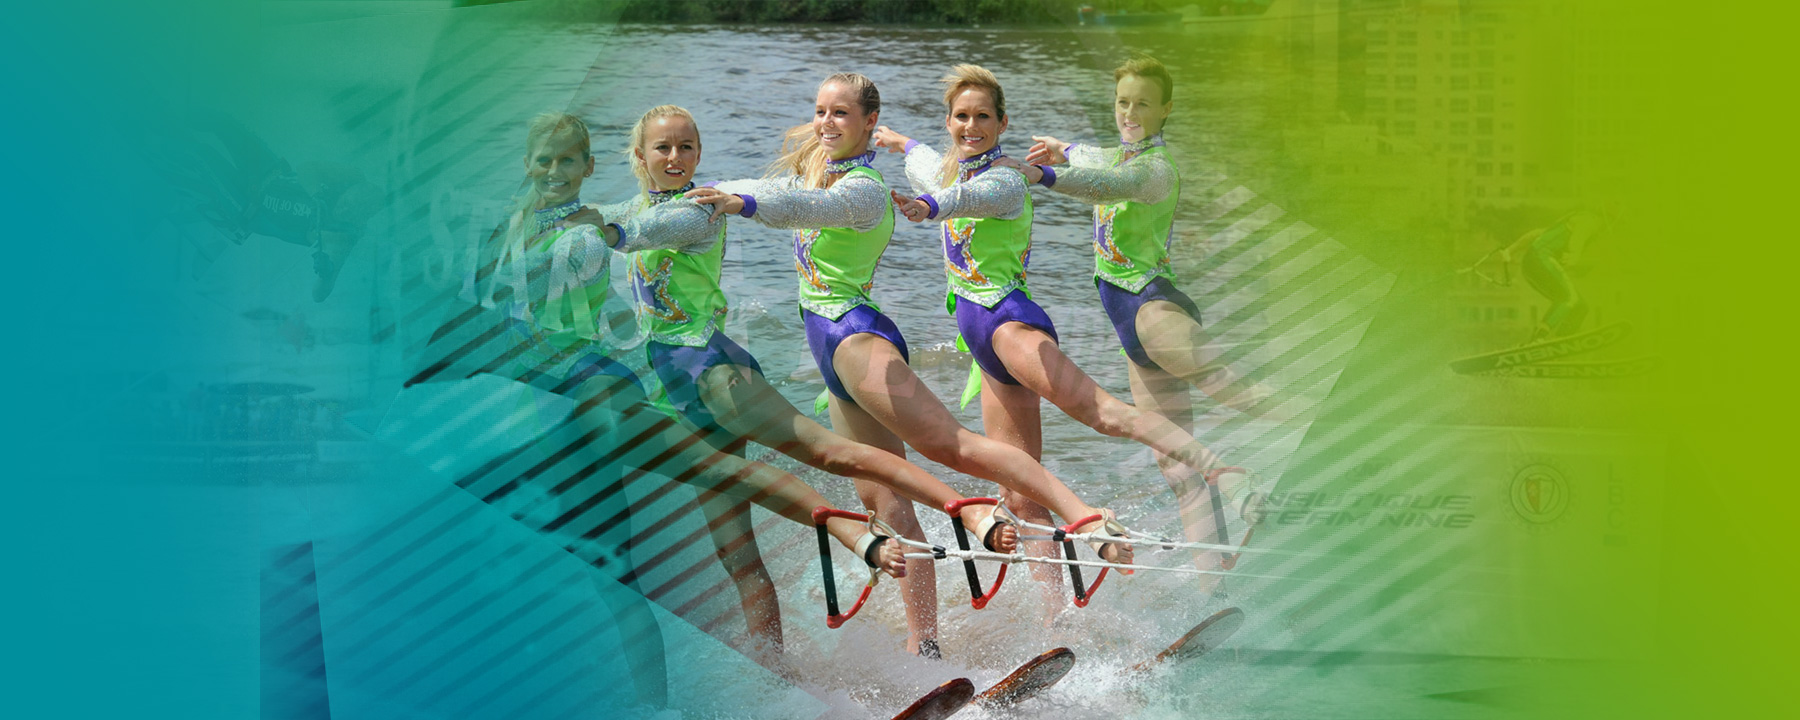 The Girls of Stars Of Florida water ski show Ballet line